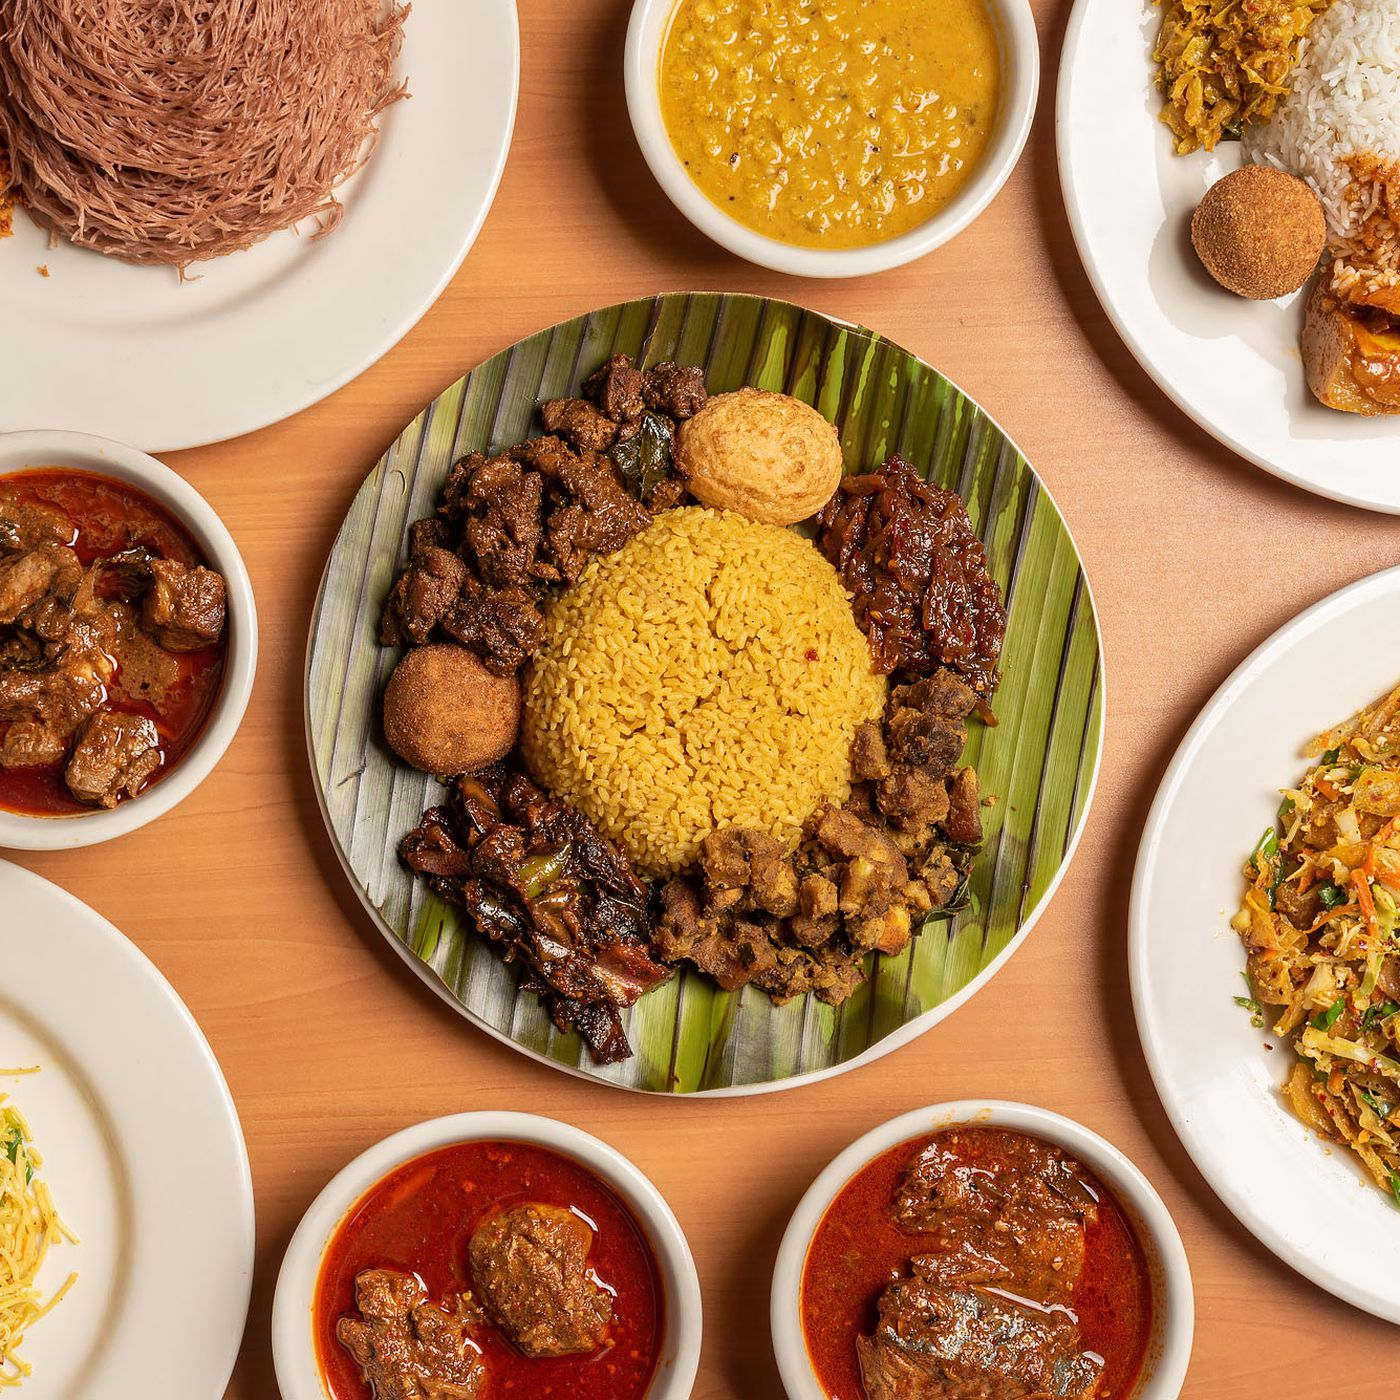 eater.com - Fiona Chandra - Standout Sri Lankan Food Hides in Plain Sight at This San Fernando Valley Corner Store